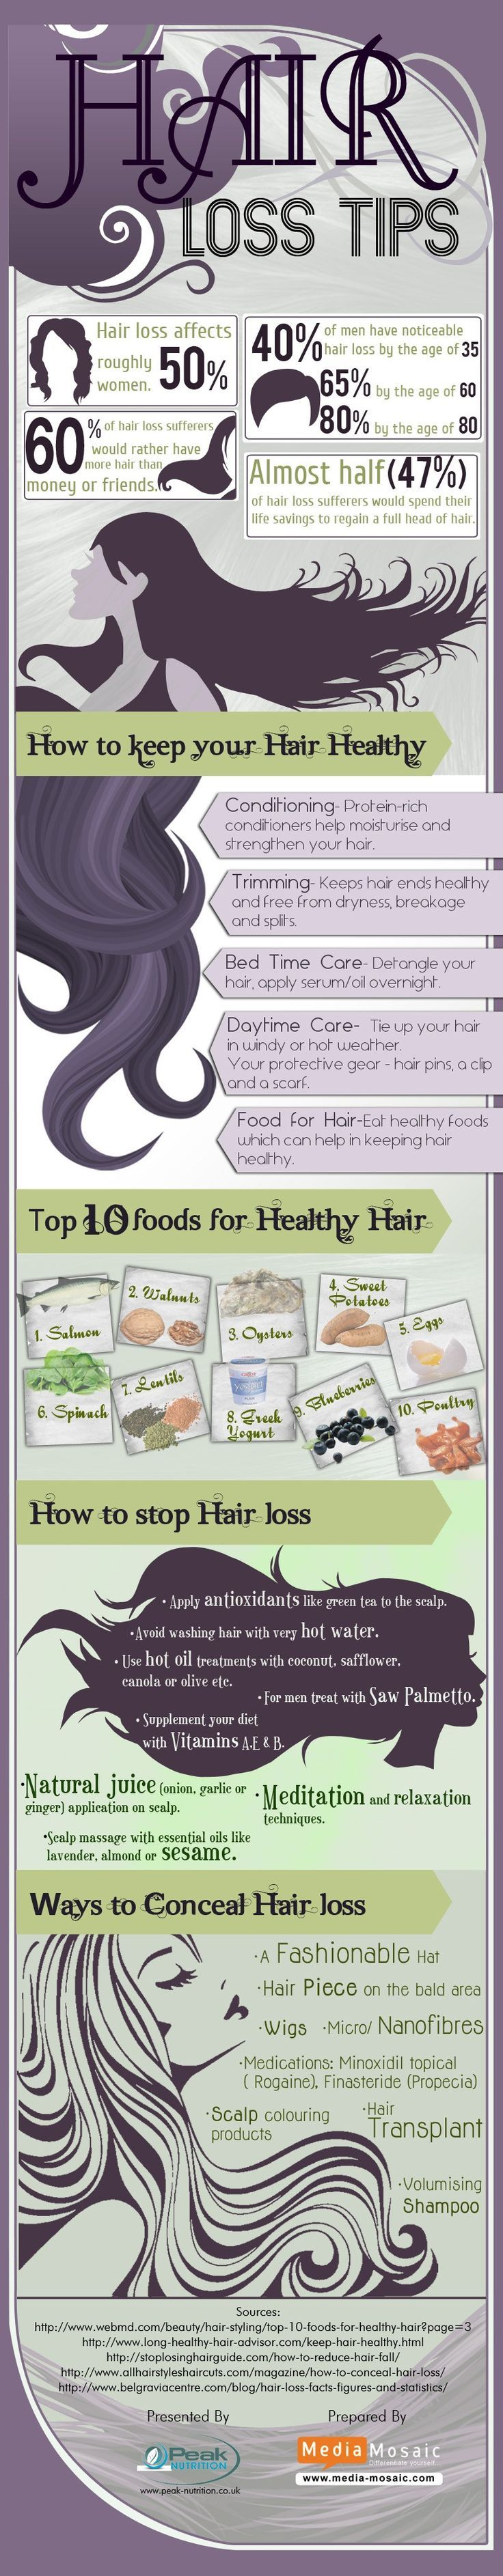 Female Hair Loss Is More Common Than You Think http://www.blackhairinformation.com/general-articles/female-hair-loss-common-think/